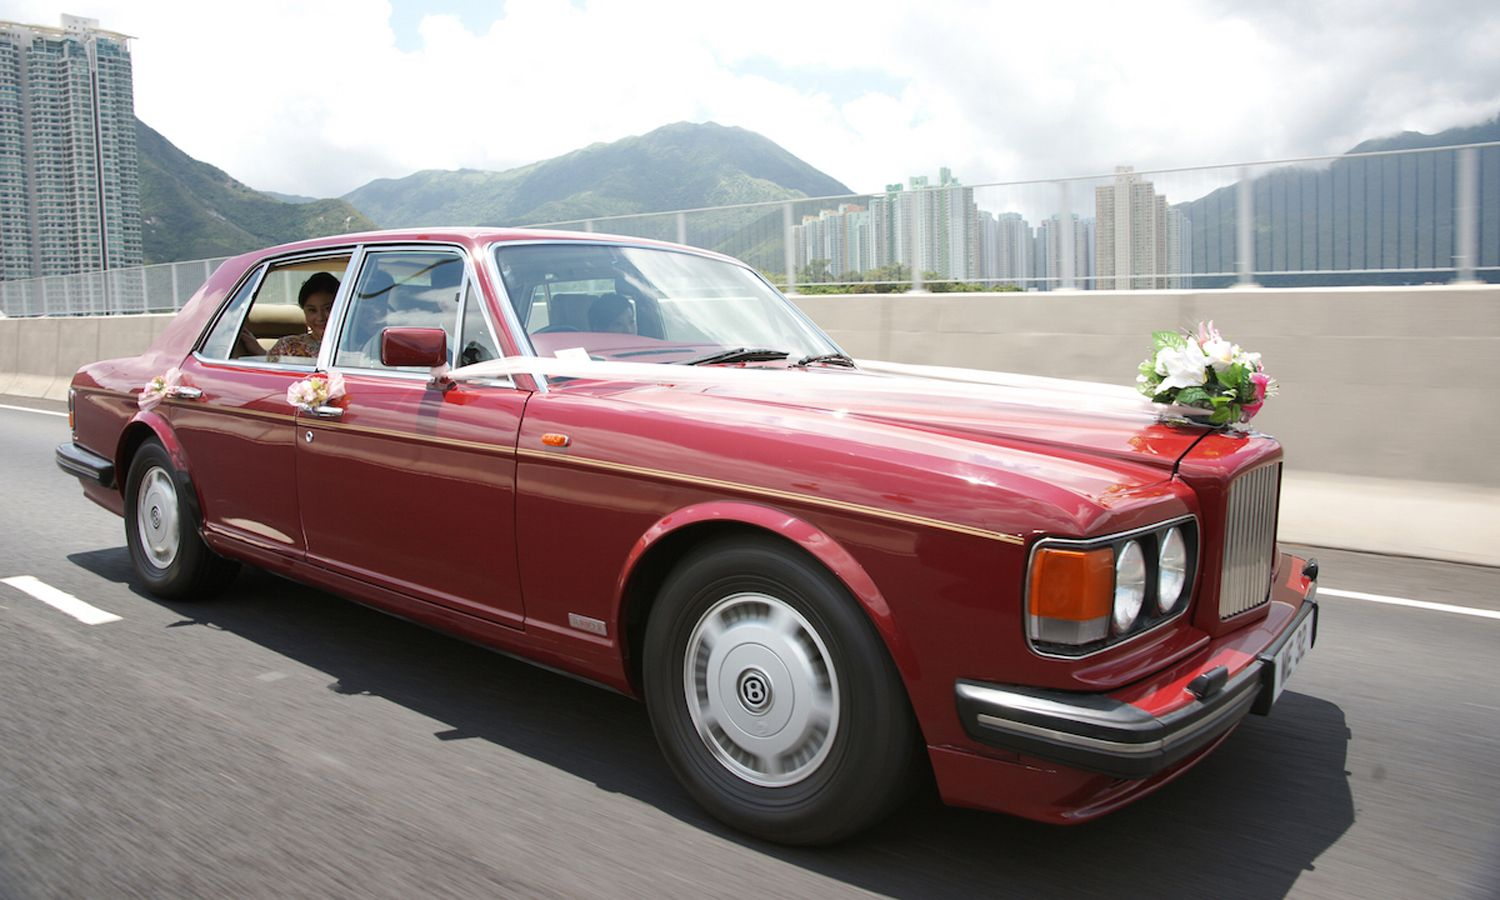 Hong Kong S Coolest Rides For Brides